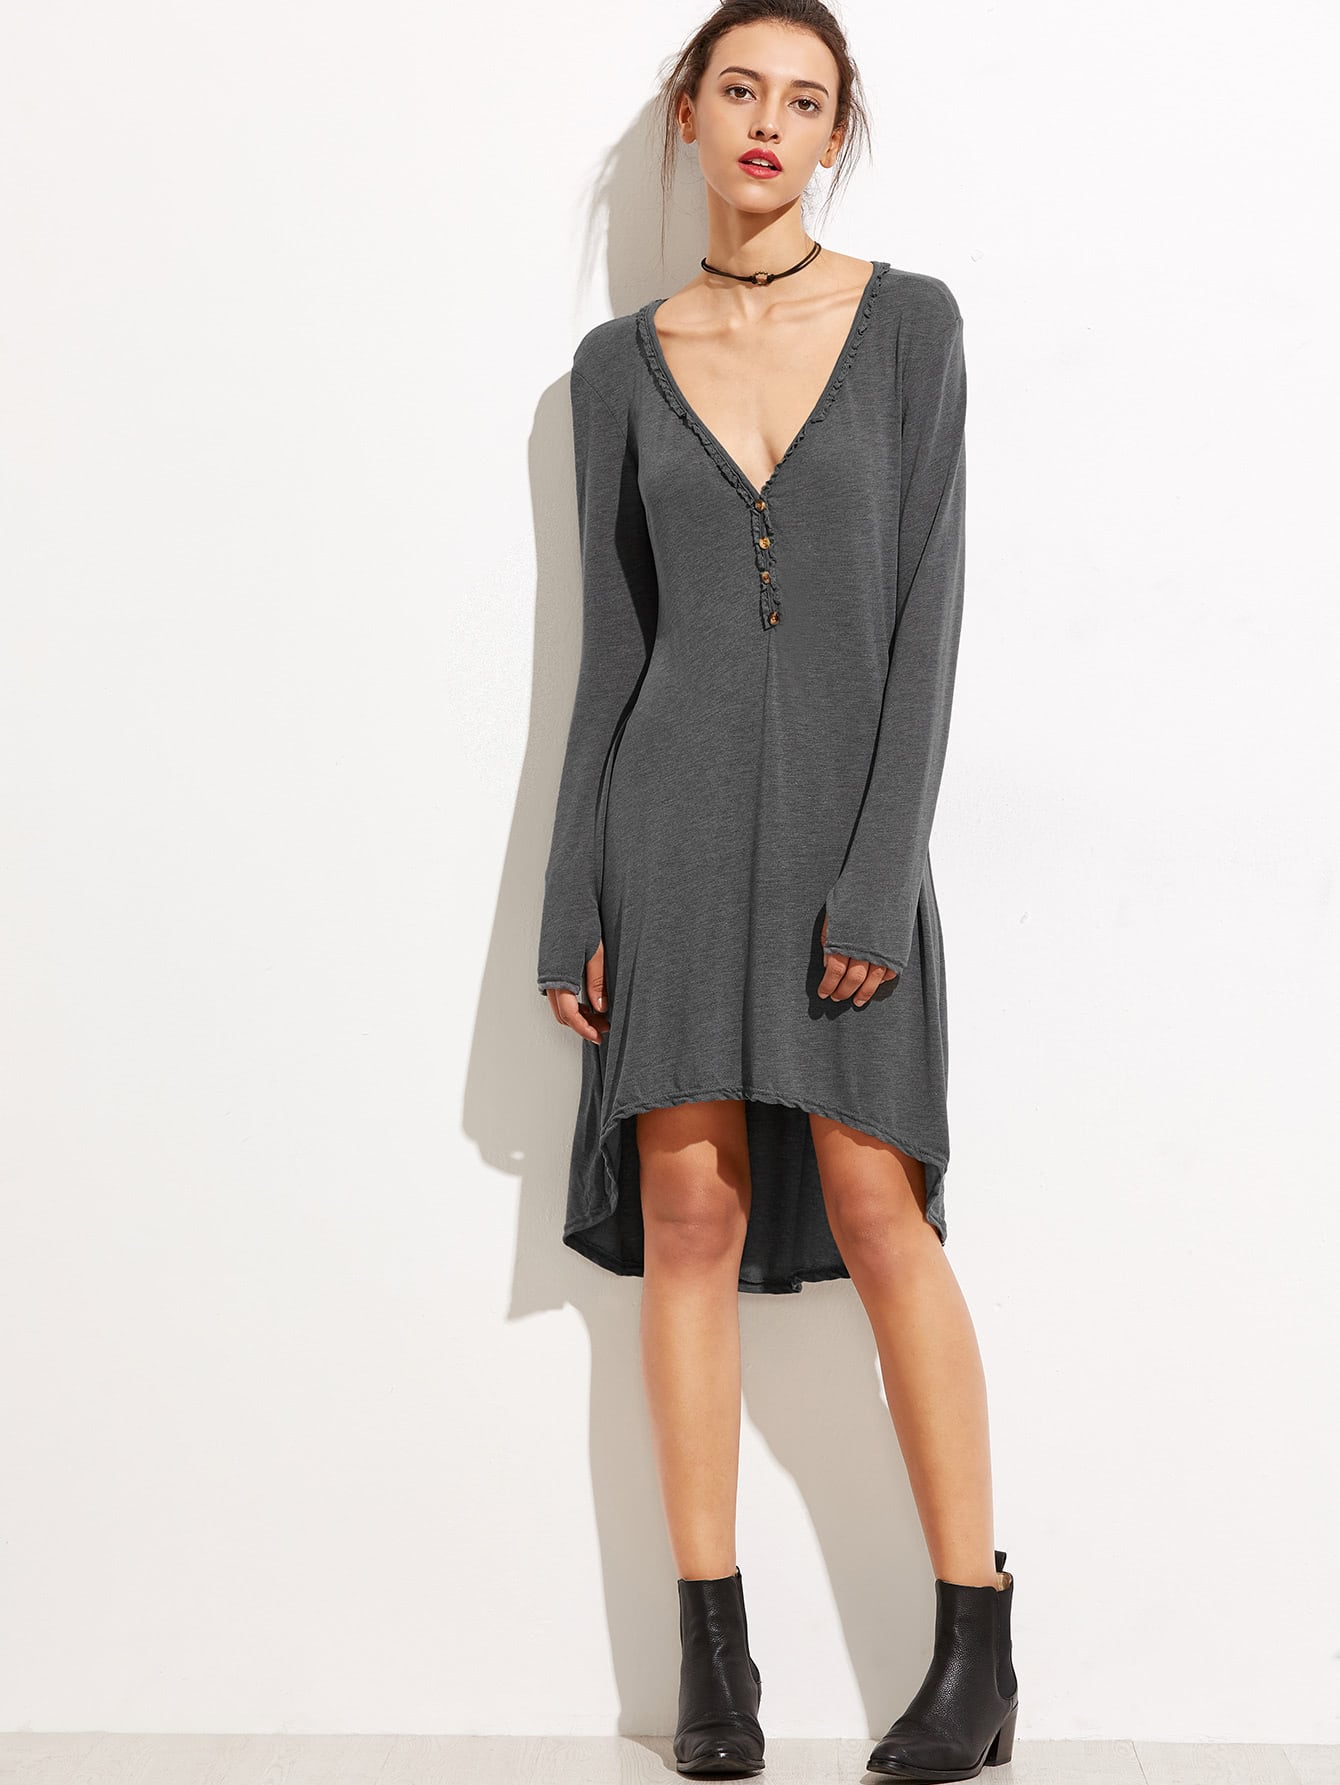 Grey Deep V Neck Dip Hem Button Front DressGrey Deep V Neck Dip Hem Button Front Dress<br><br>color: Grey<br>size: L,S,XL